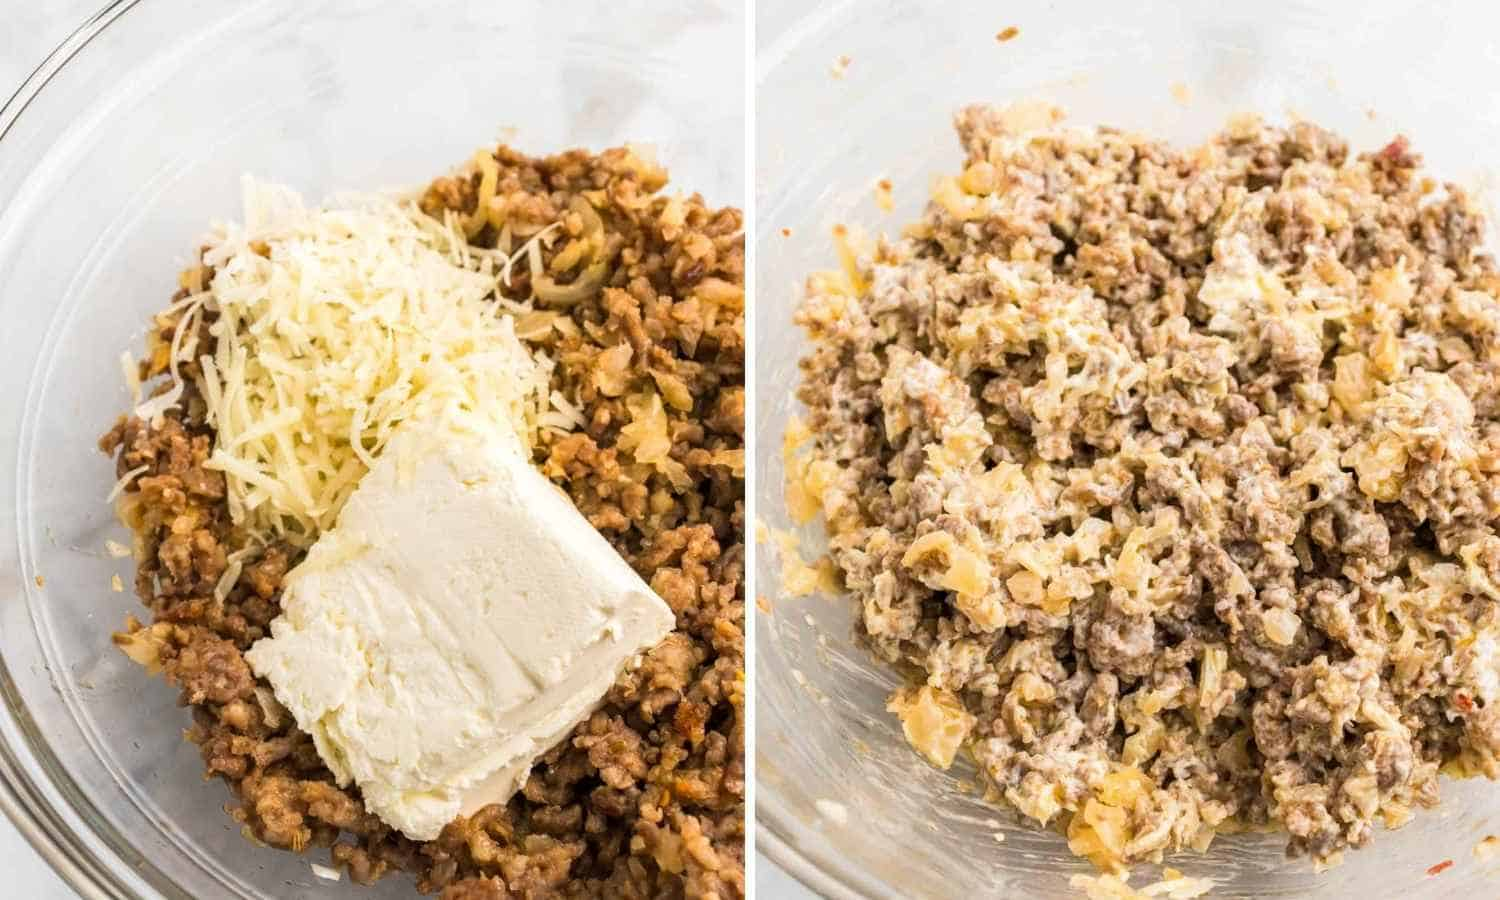 Adding cream cheese to the sausage mixture shown in 2 images